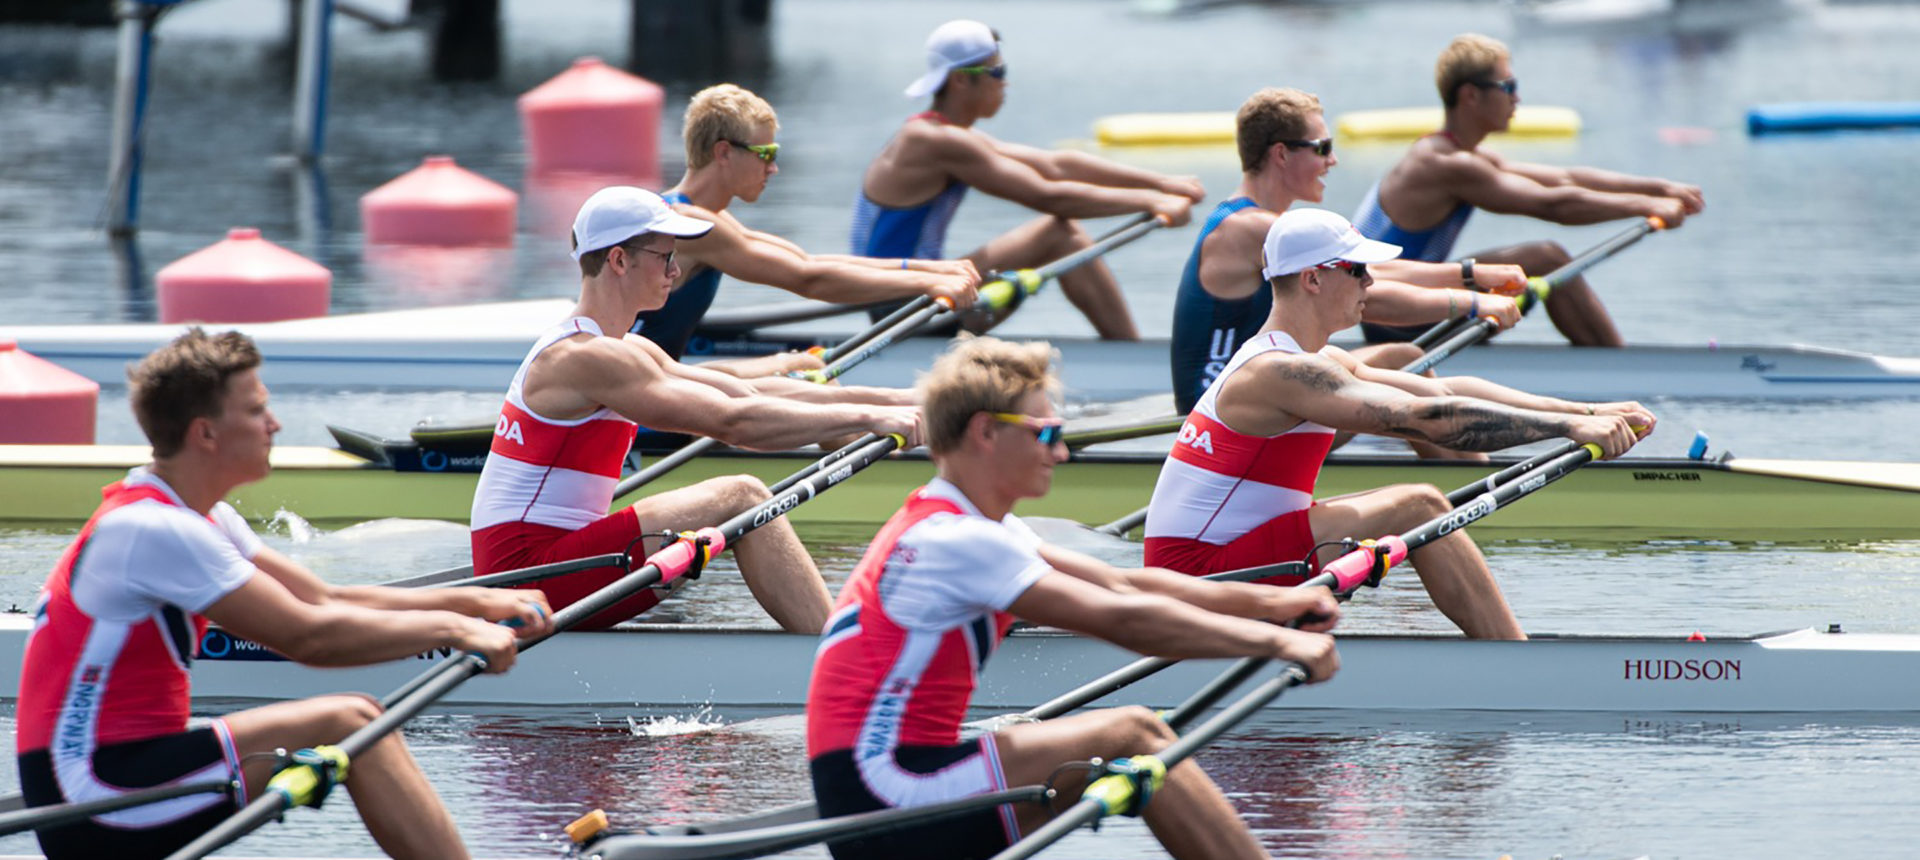 Canadian boats through to semi-finals and finals at U23 Worlds